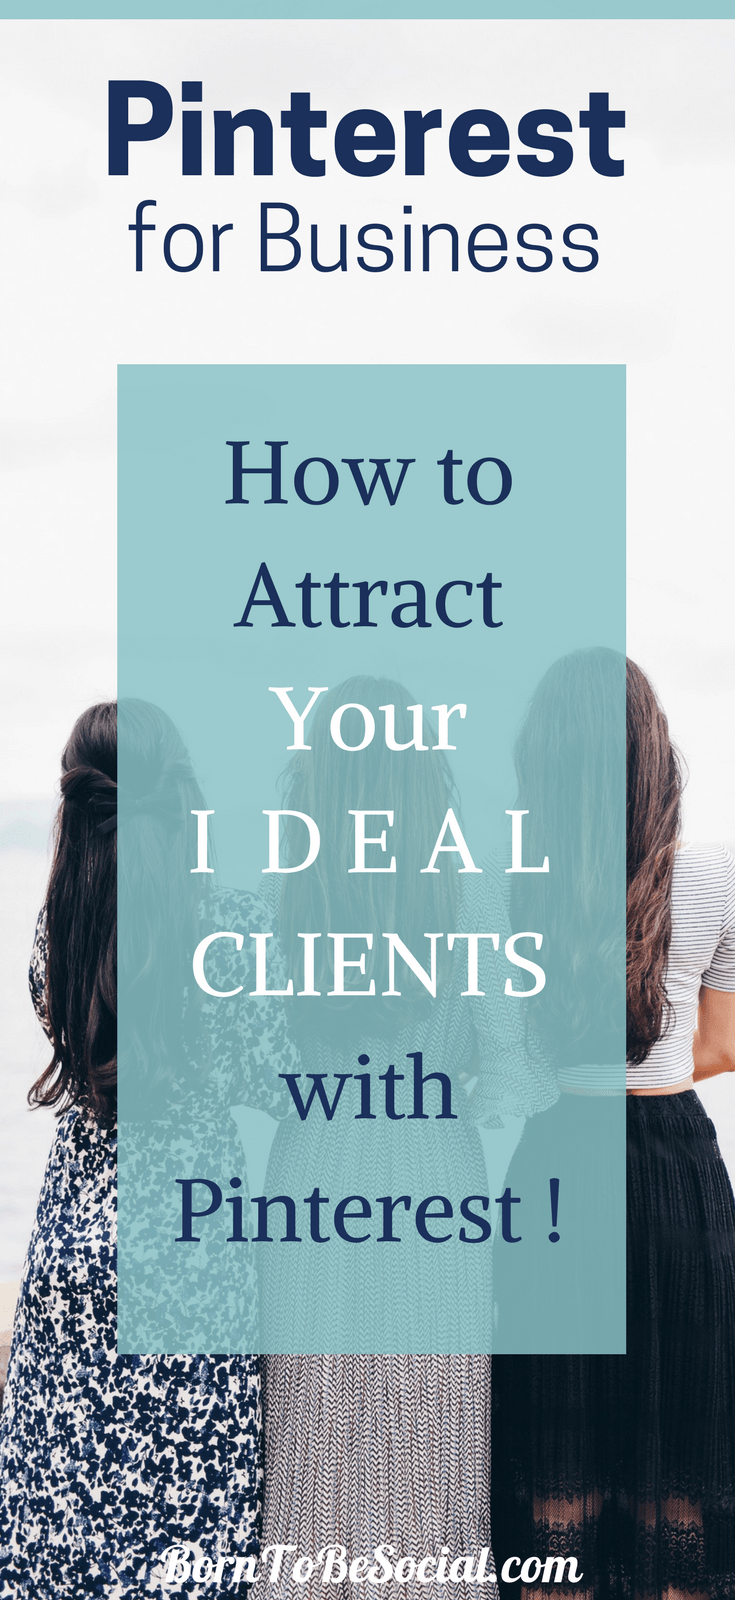 ATTRACT YOUR IDEAL CLIENT – HOW TO GROW YOUR TRIBE ON PINTEREST! – As a business owner you want to attract pinners that are interested in your product or service. So how do you go about attracting the right kind of followers? Read on to find out! | via @BornToBeSocial, Pinterest Marketing & Consulting | Pinterest for Business #ExpertPinterest #PinterestForBusiness #PinterestMarketingTips #Pinterest